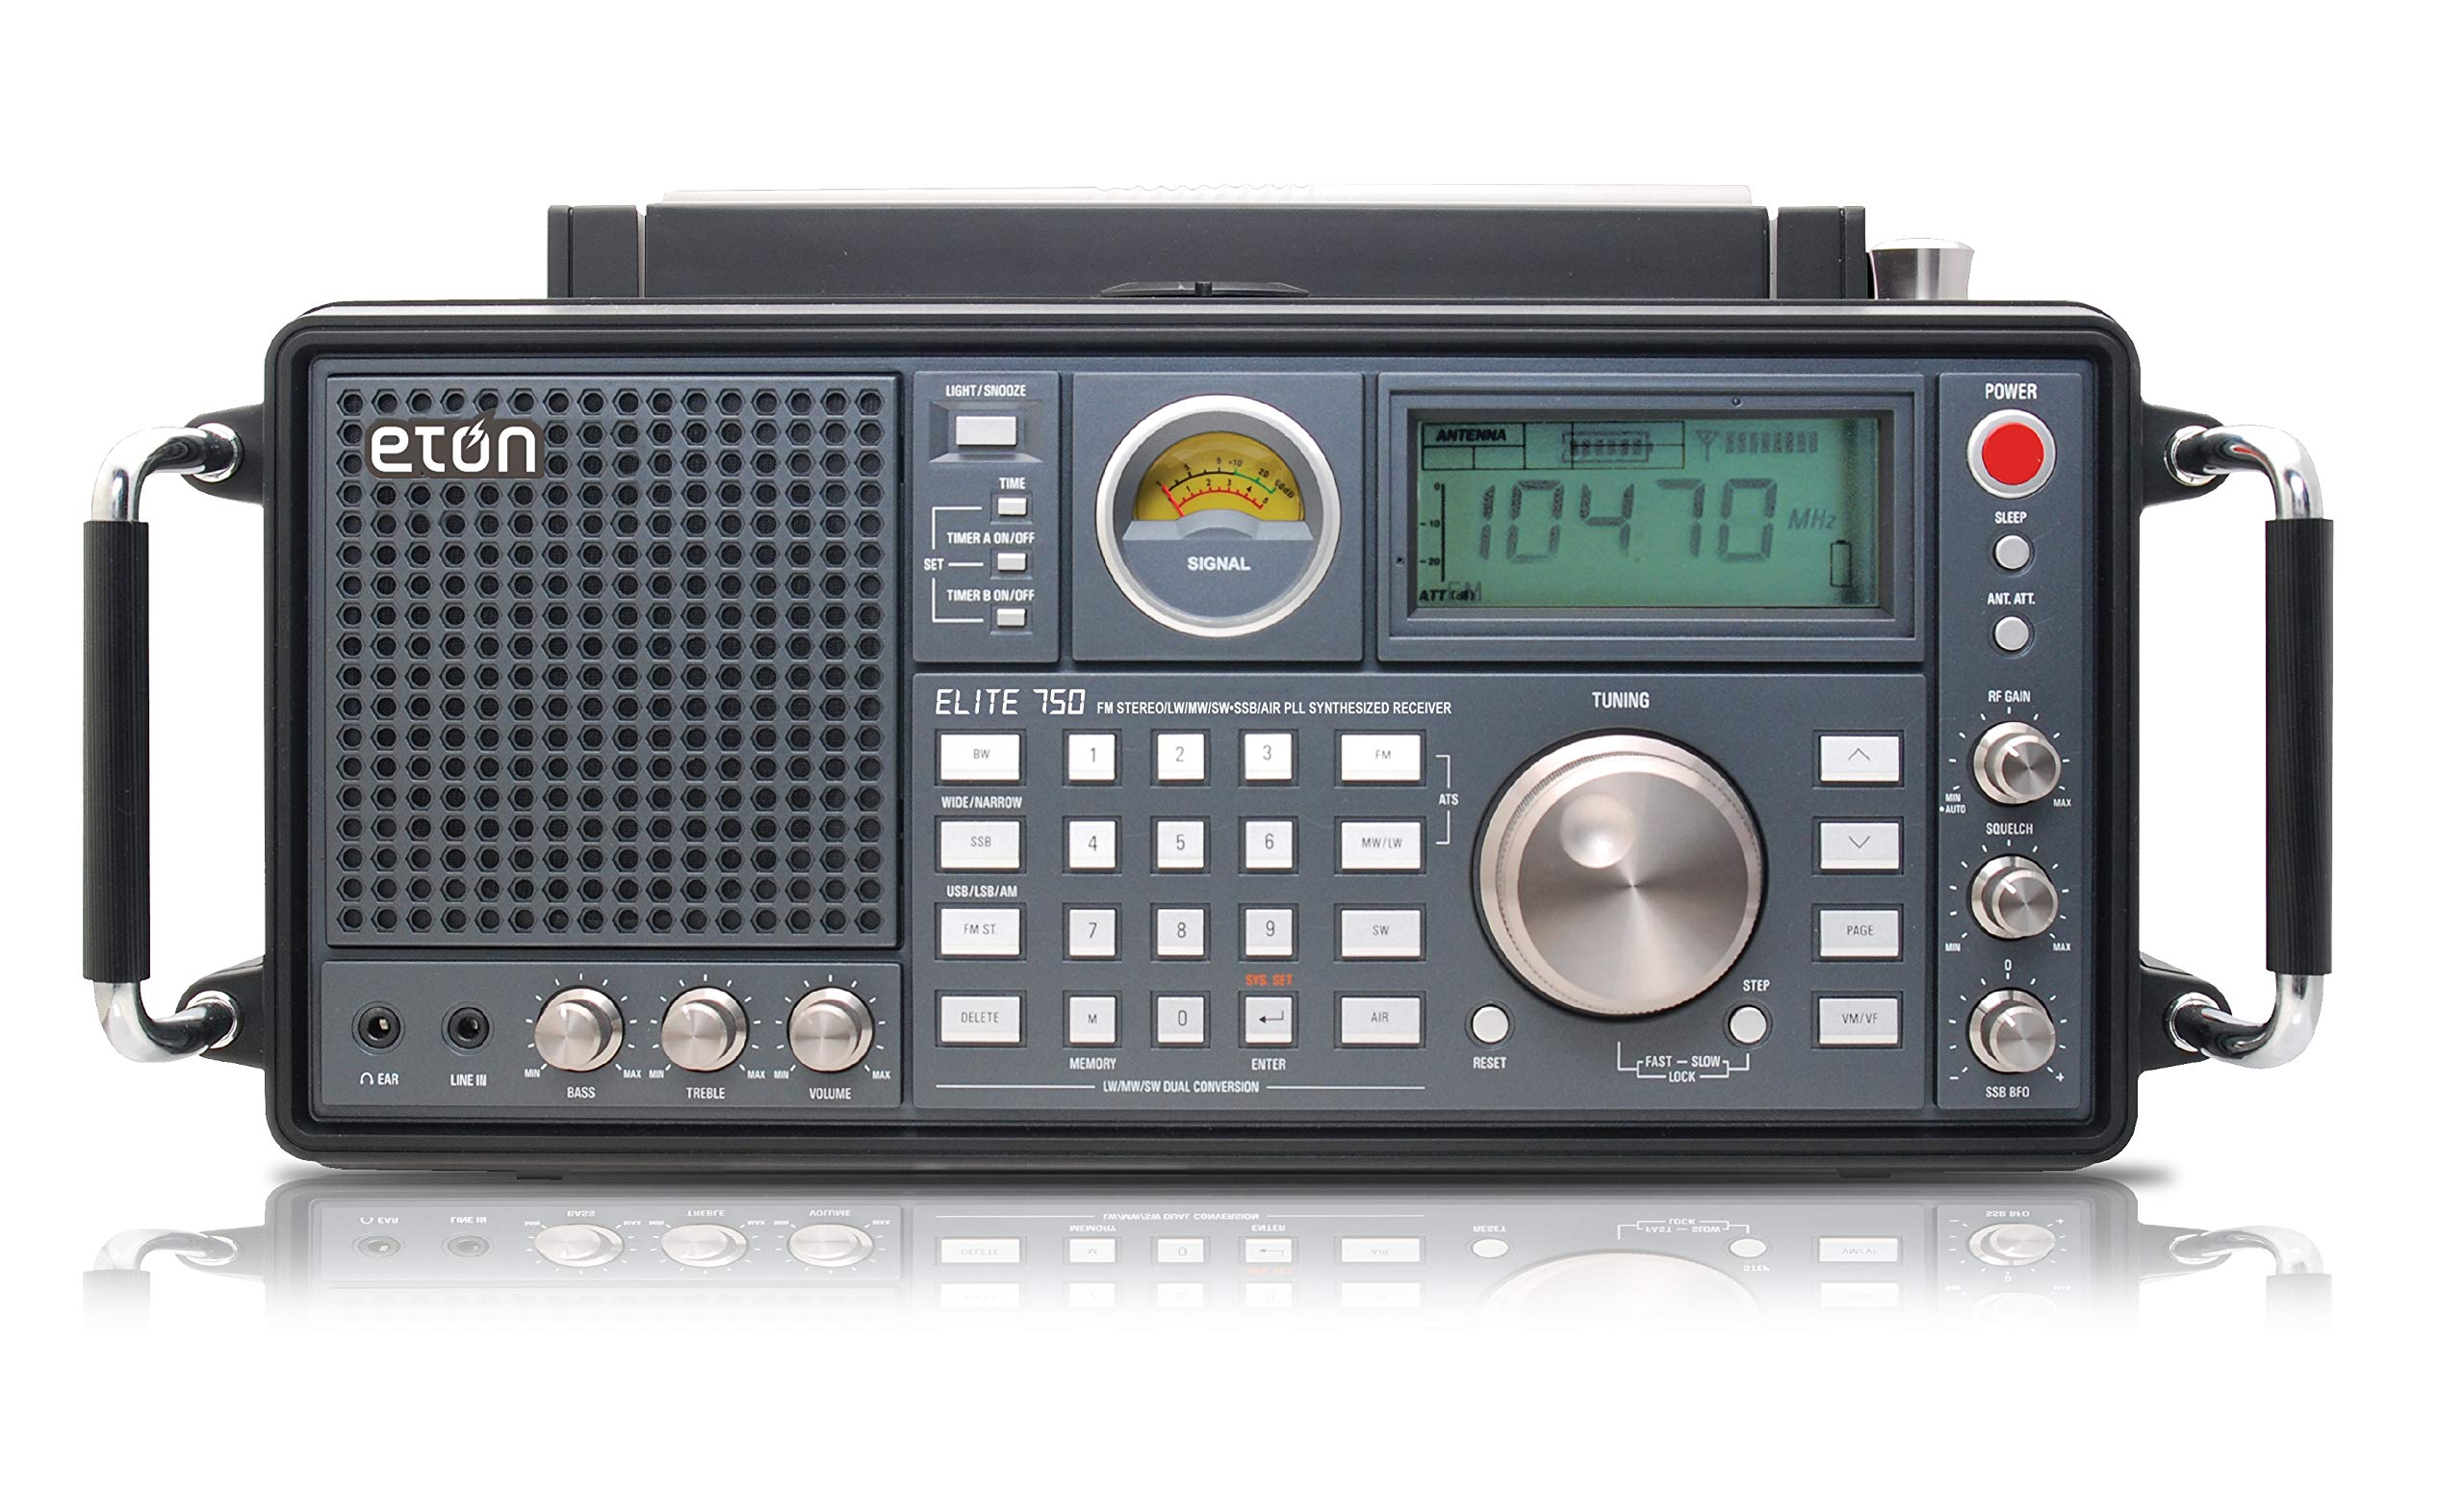 Eton Grundig Satellit 750 Ultimate